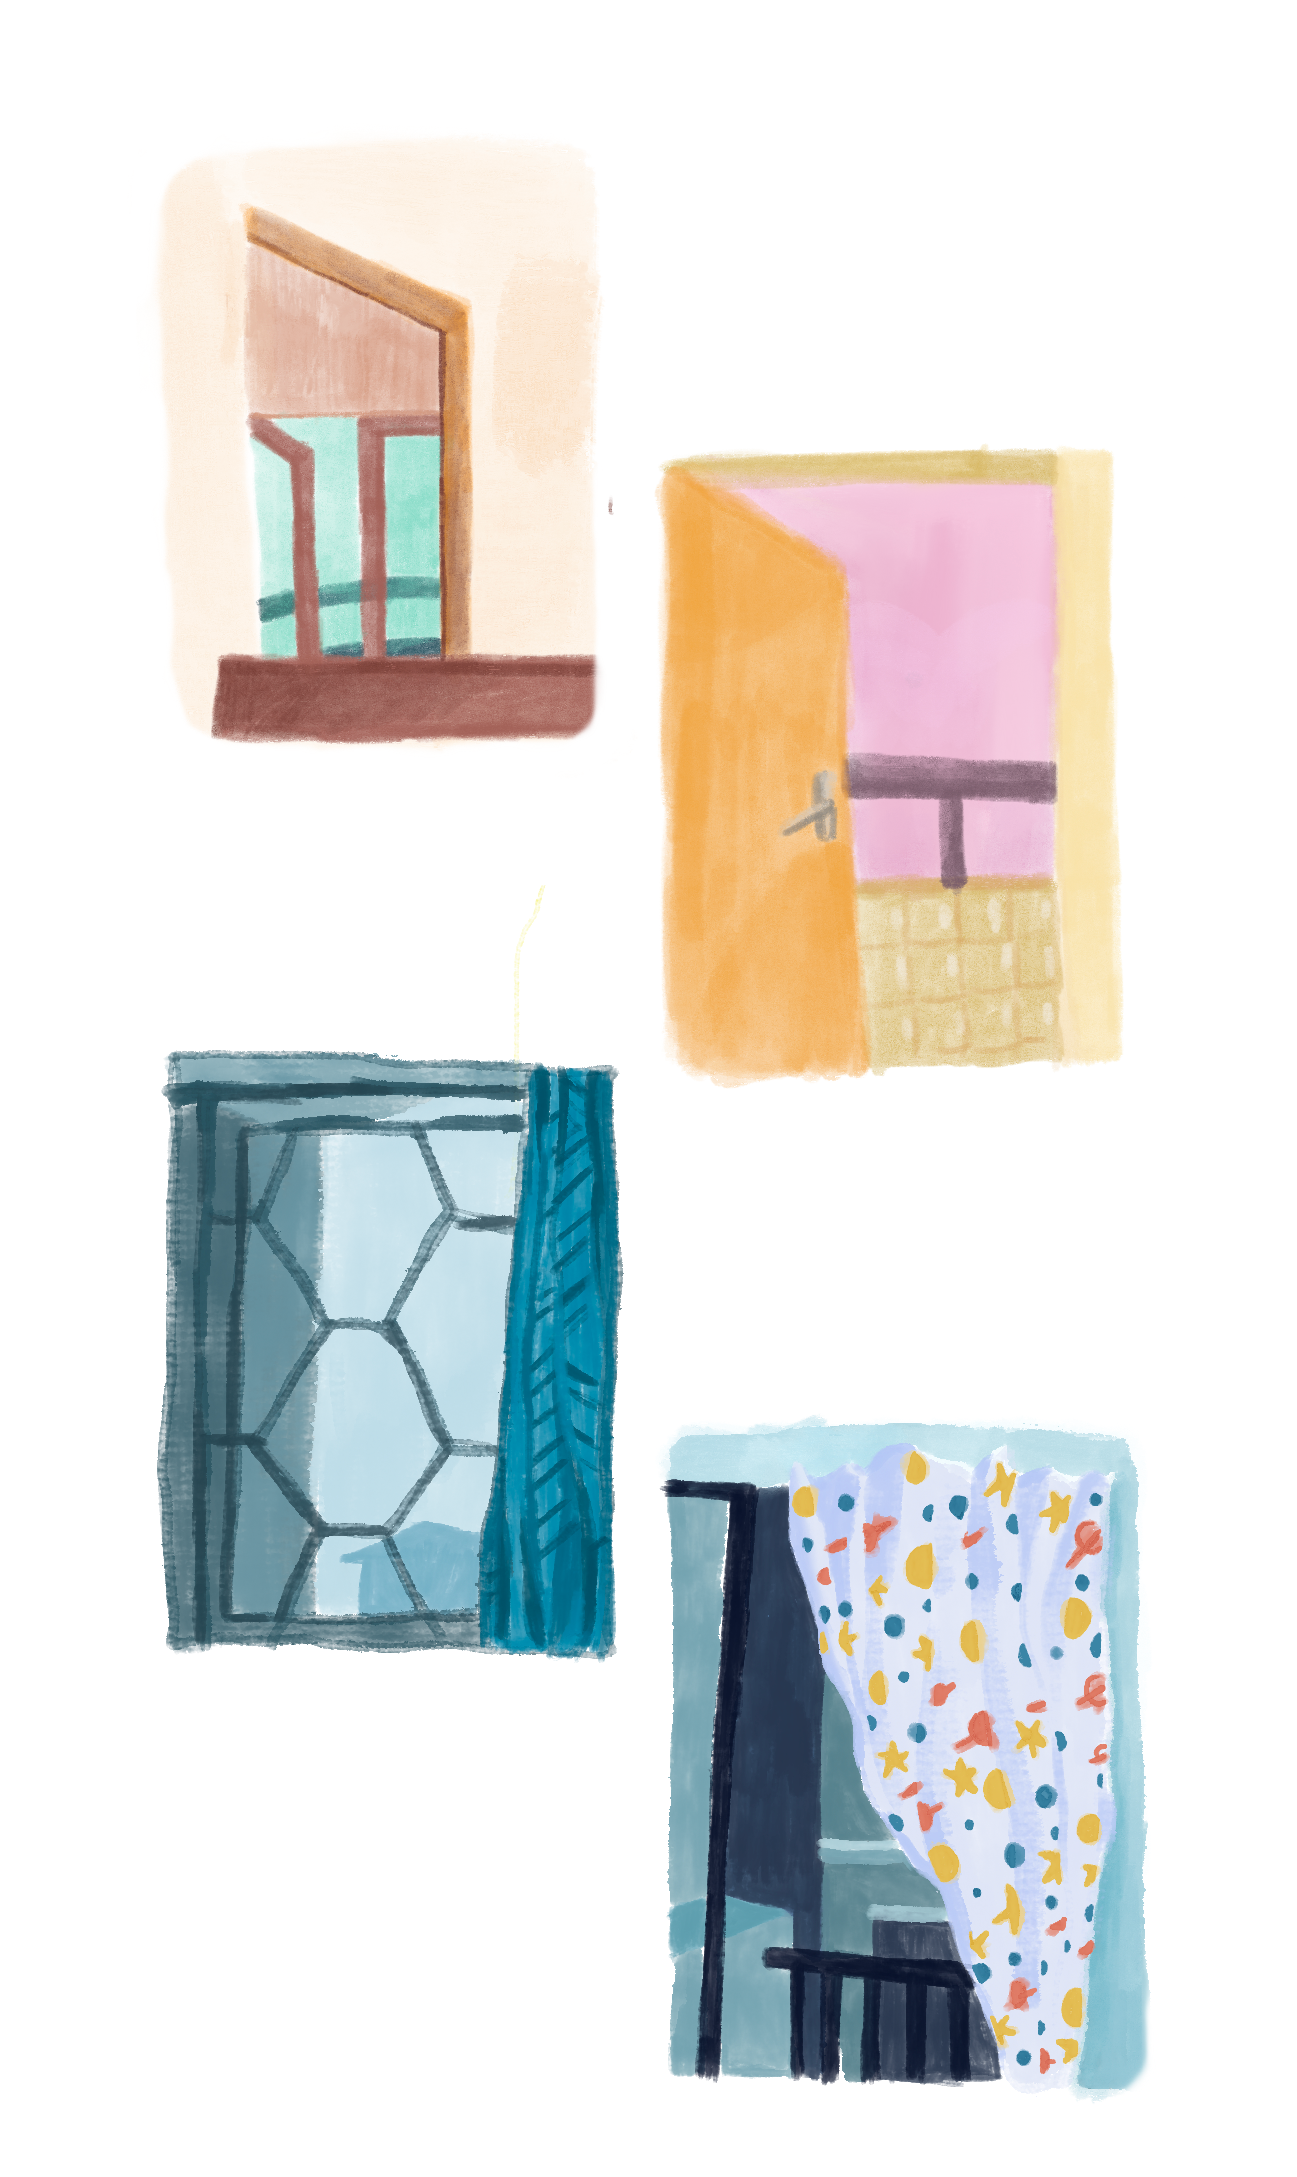 some paintings of windows